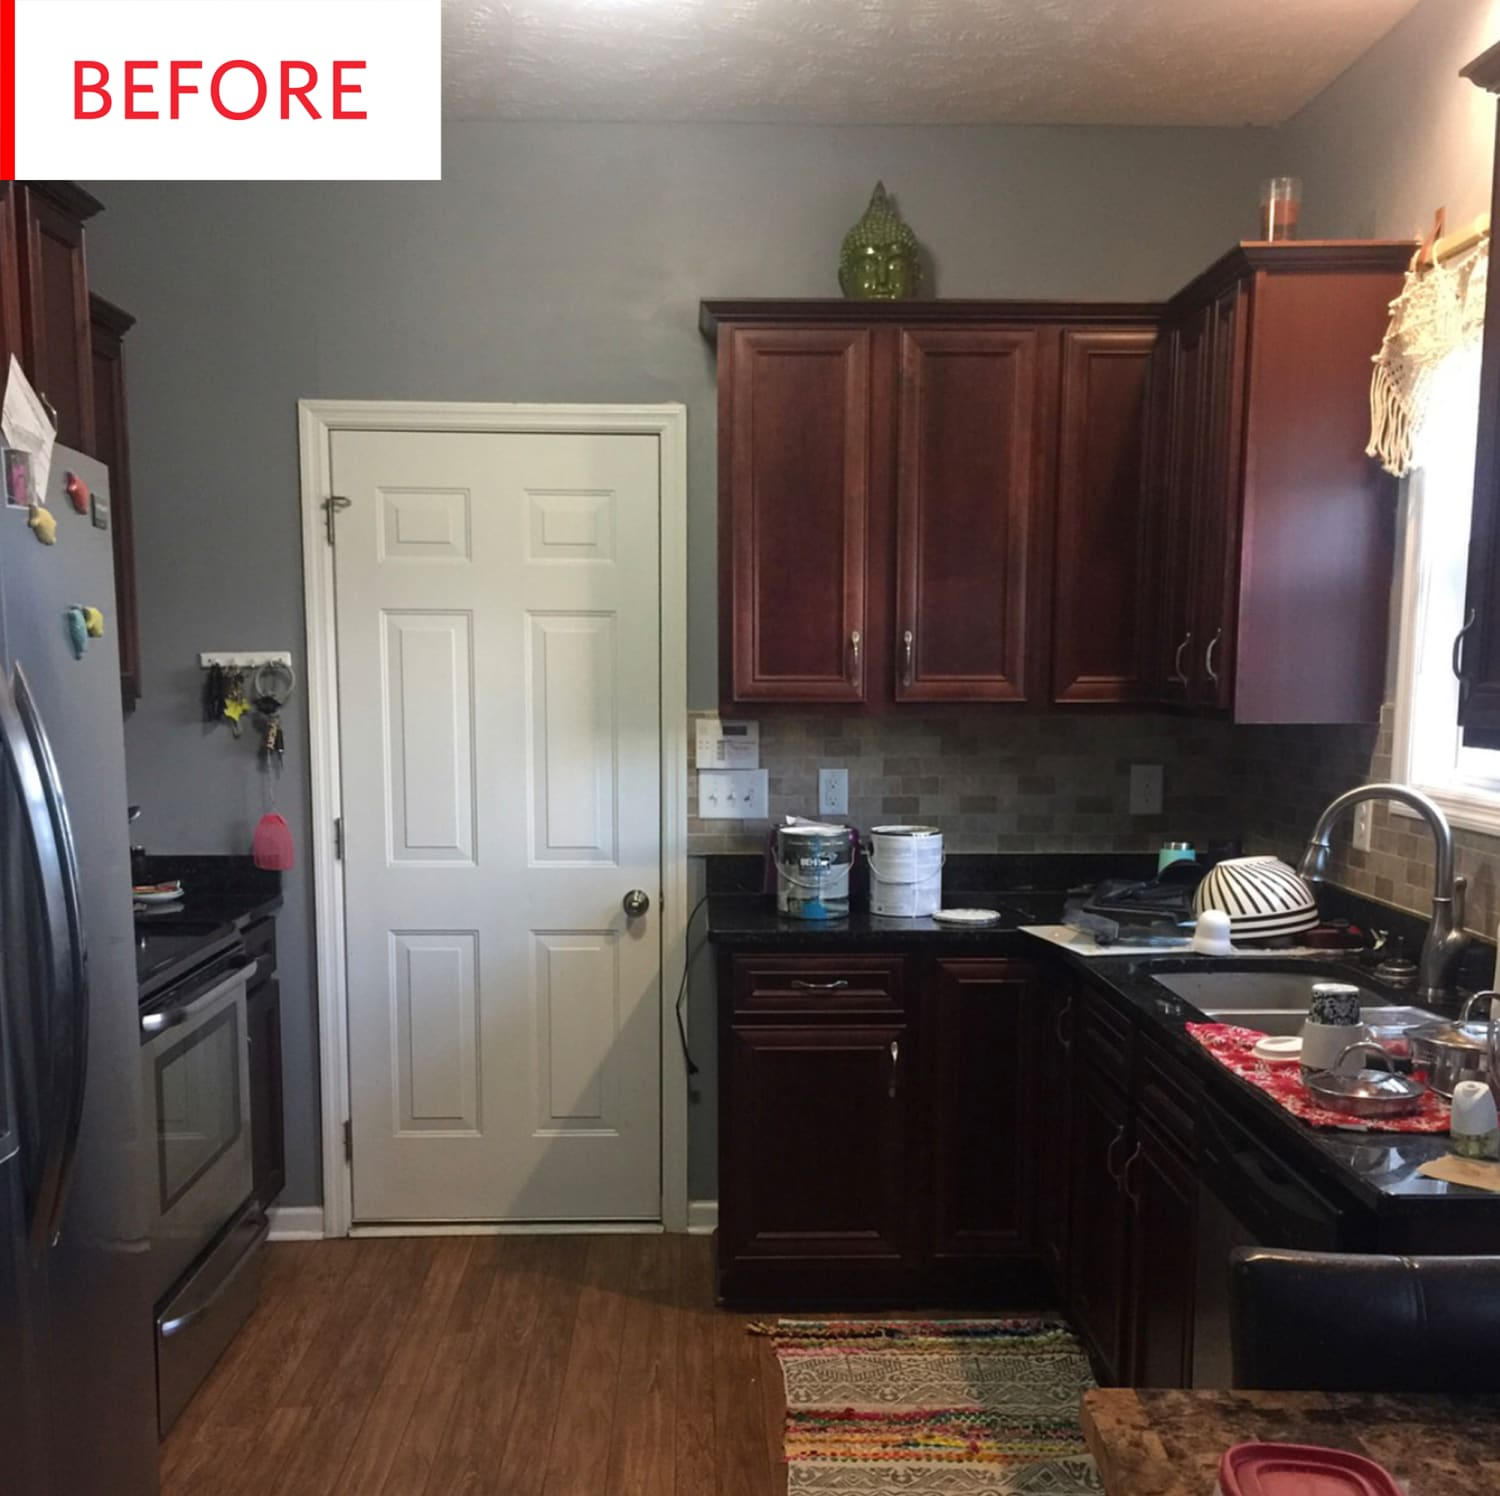 Painted Kitchen Cabinet Ideas Before And After: Colorful Kitchen Before And After Blue Painted Cabinets